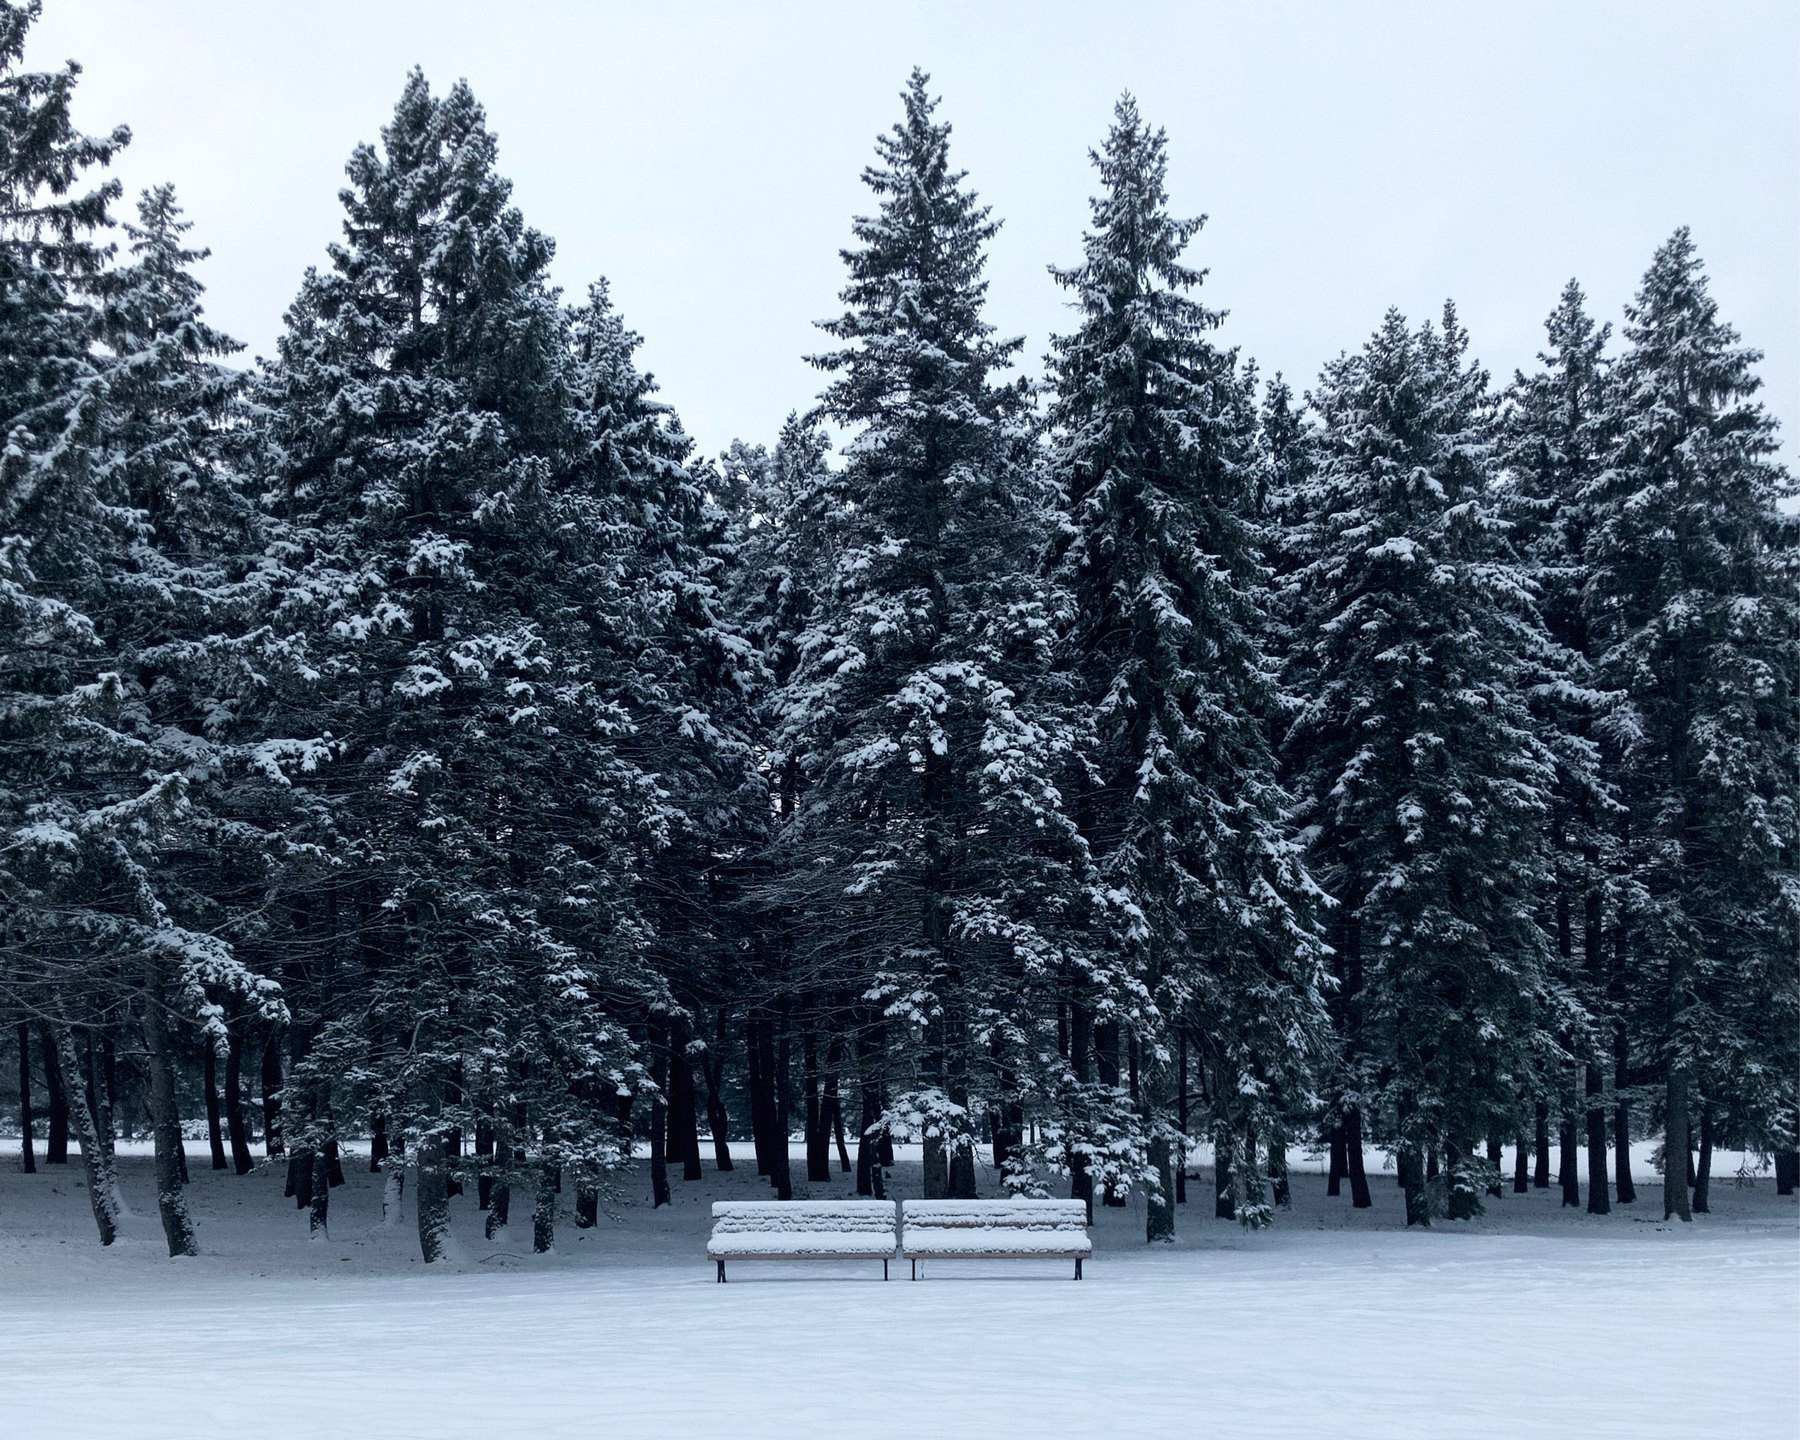 Two park benches covered in snow with a backdrop of snow-capped evergreens.